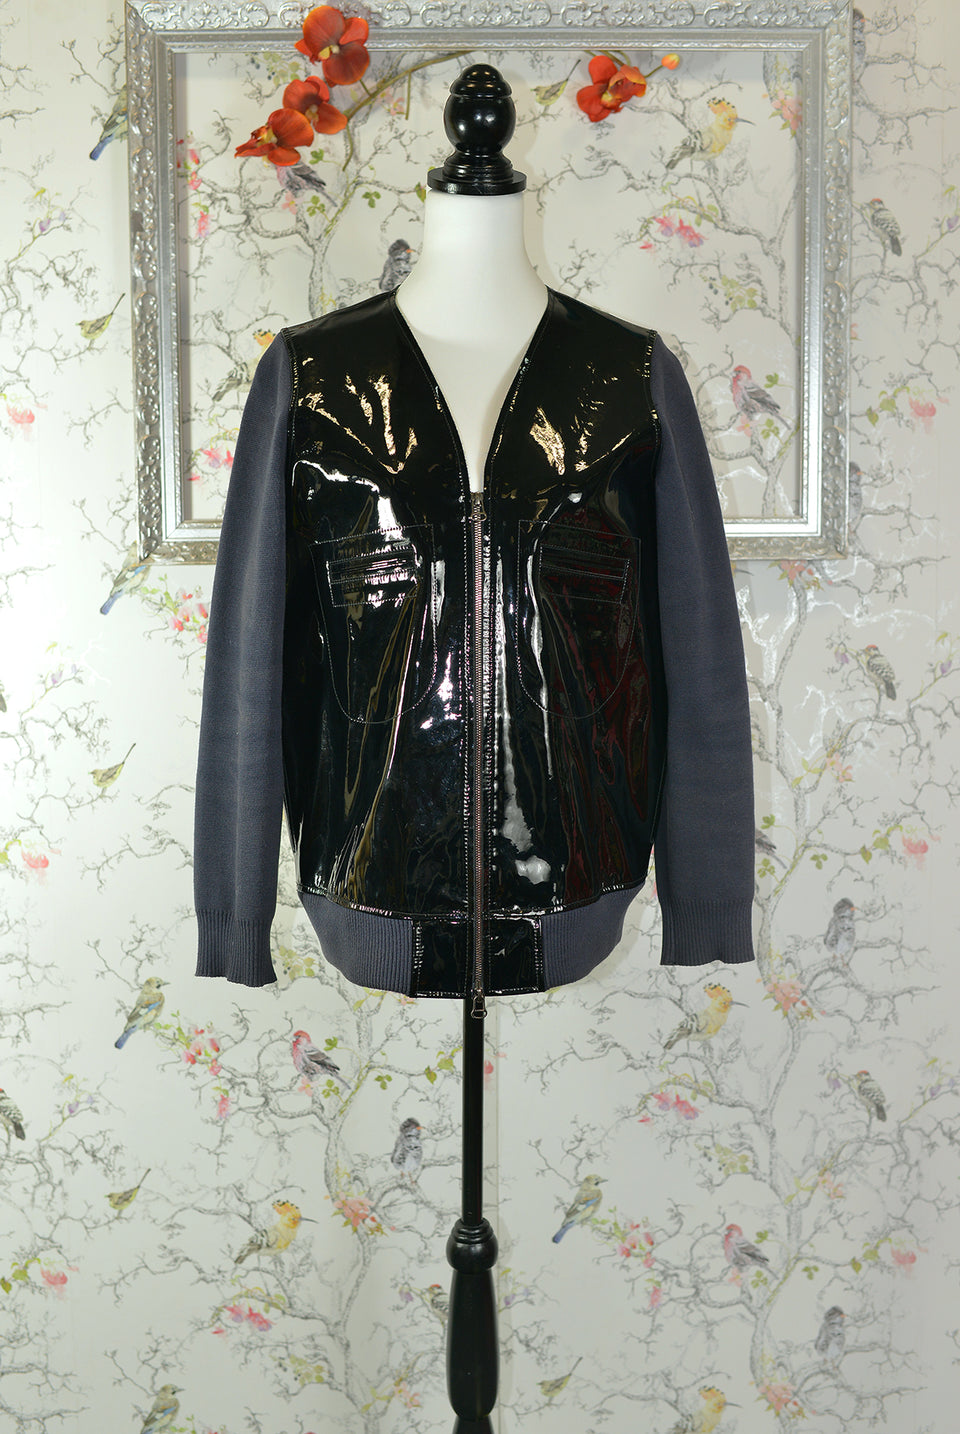 MARNI at H&M Women's Black Patent Leather and Navy Blue Cotton Sleeved Jacket. Size 14. Pre-Loved.